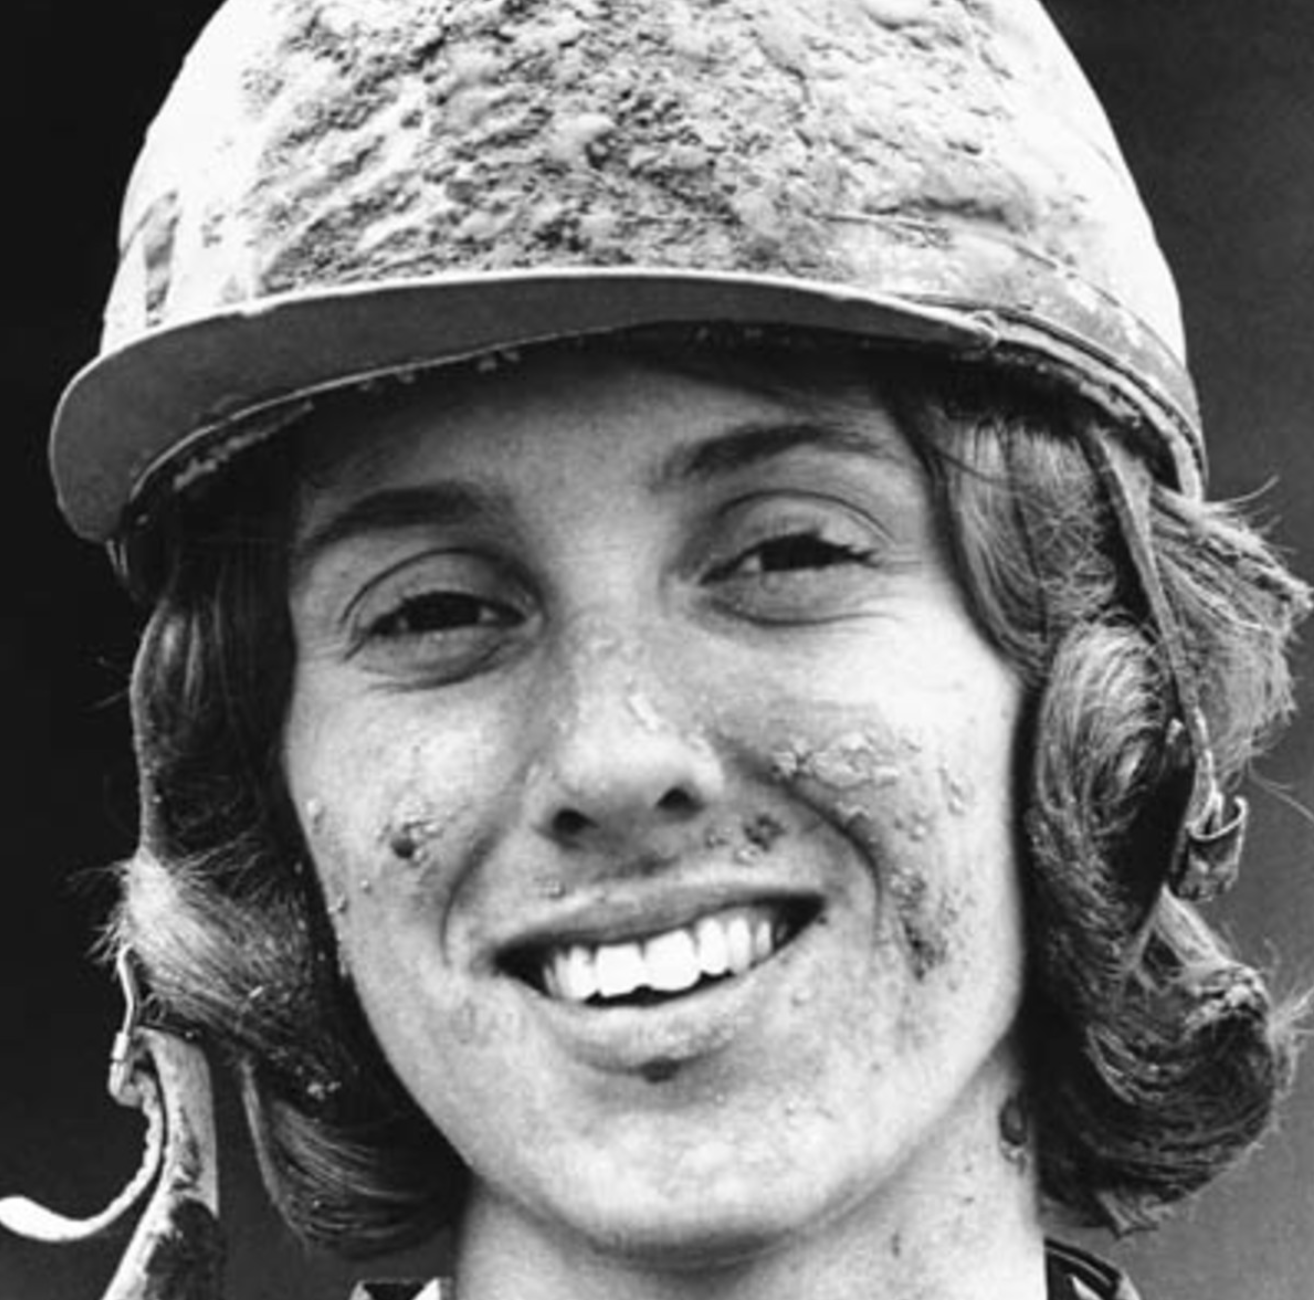 Diane Crump  (born 1948) is an American  jockey  and  horse trainer . Crump was the first woman to ride in a  pari-mutuel  race in the United States; her participation in the event was so contested that she required a full police escort through the crowds at the  Hialeah Park Race Track . [3]  She went on to be the first woman to ride in the  Kentucky Derby .